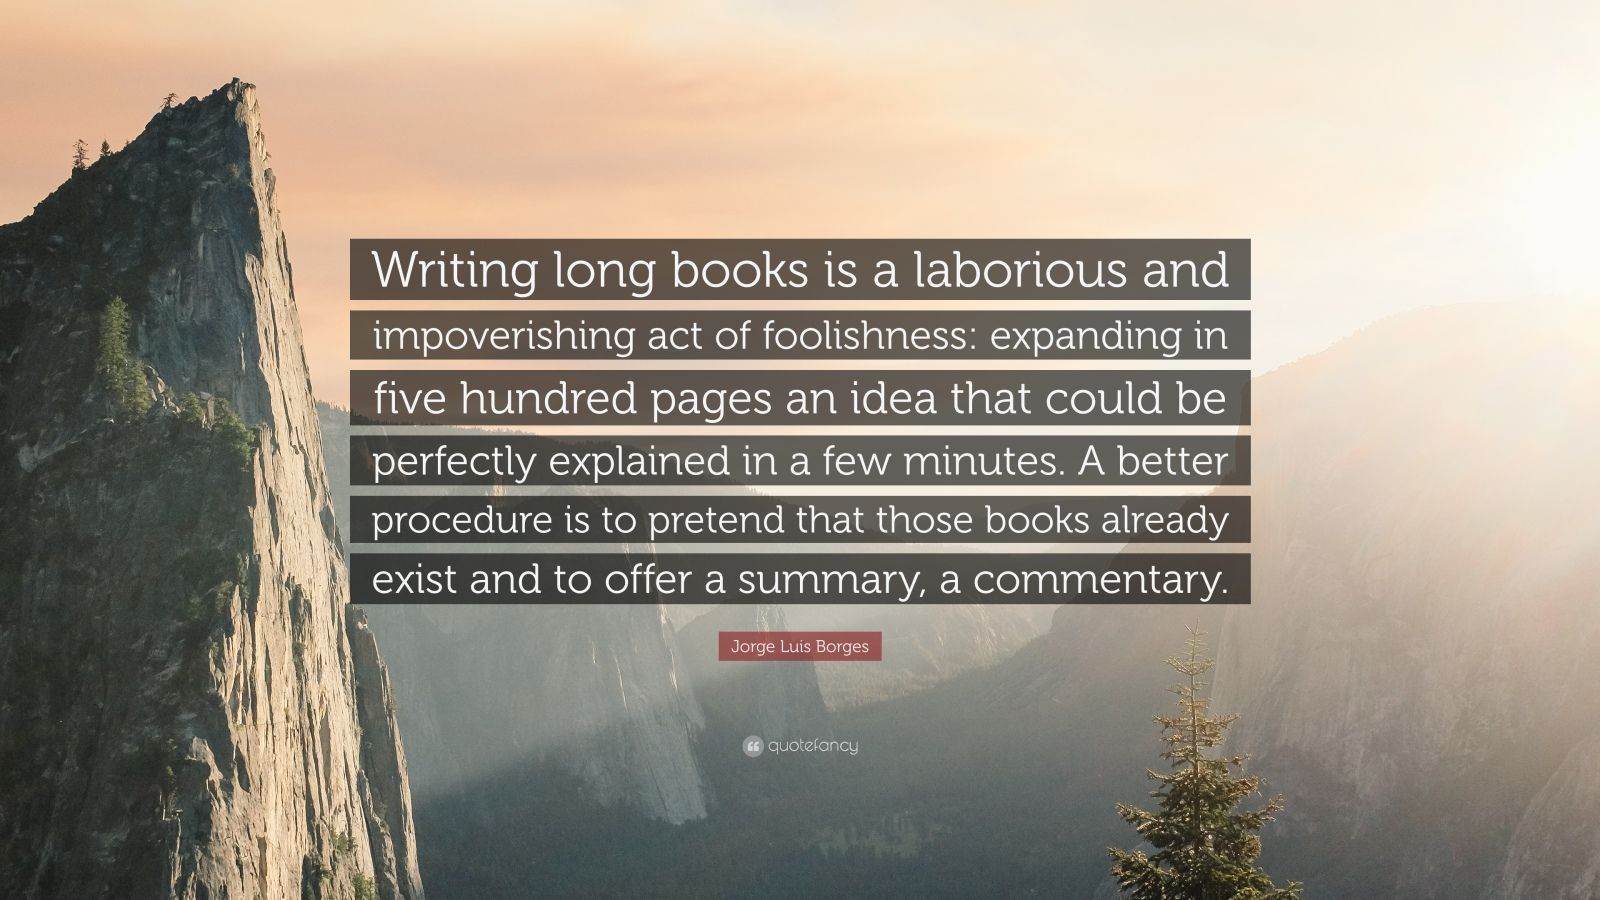 """Jorge Luis Borges Quote: """"Writing long books is a laborious and impoverishing act of foolishness: expanding in five hundred pages an idea that could be perfectly explained in a few minutes. A better procedure is to pretend that those books already exist and to offer a summary, a commentary."""""""